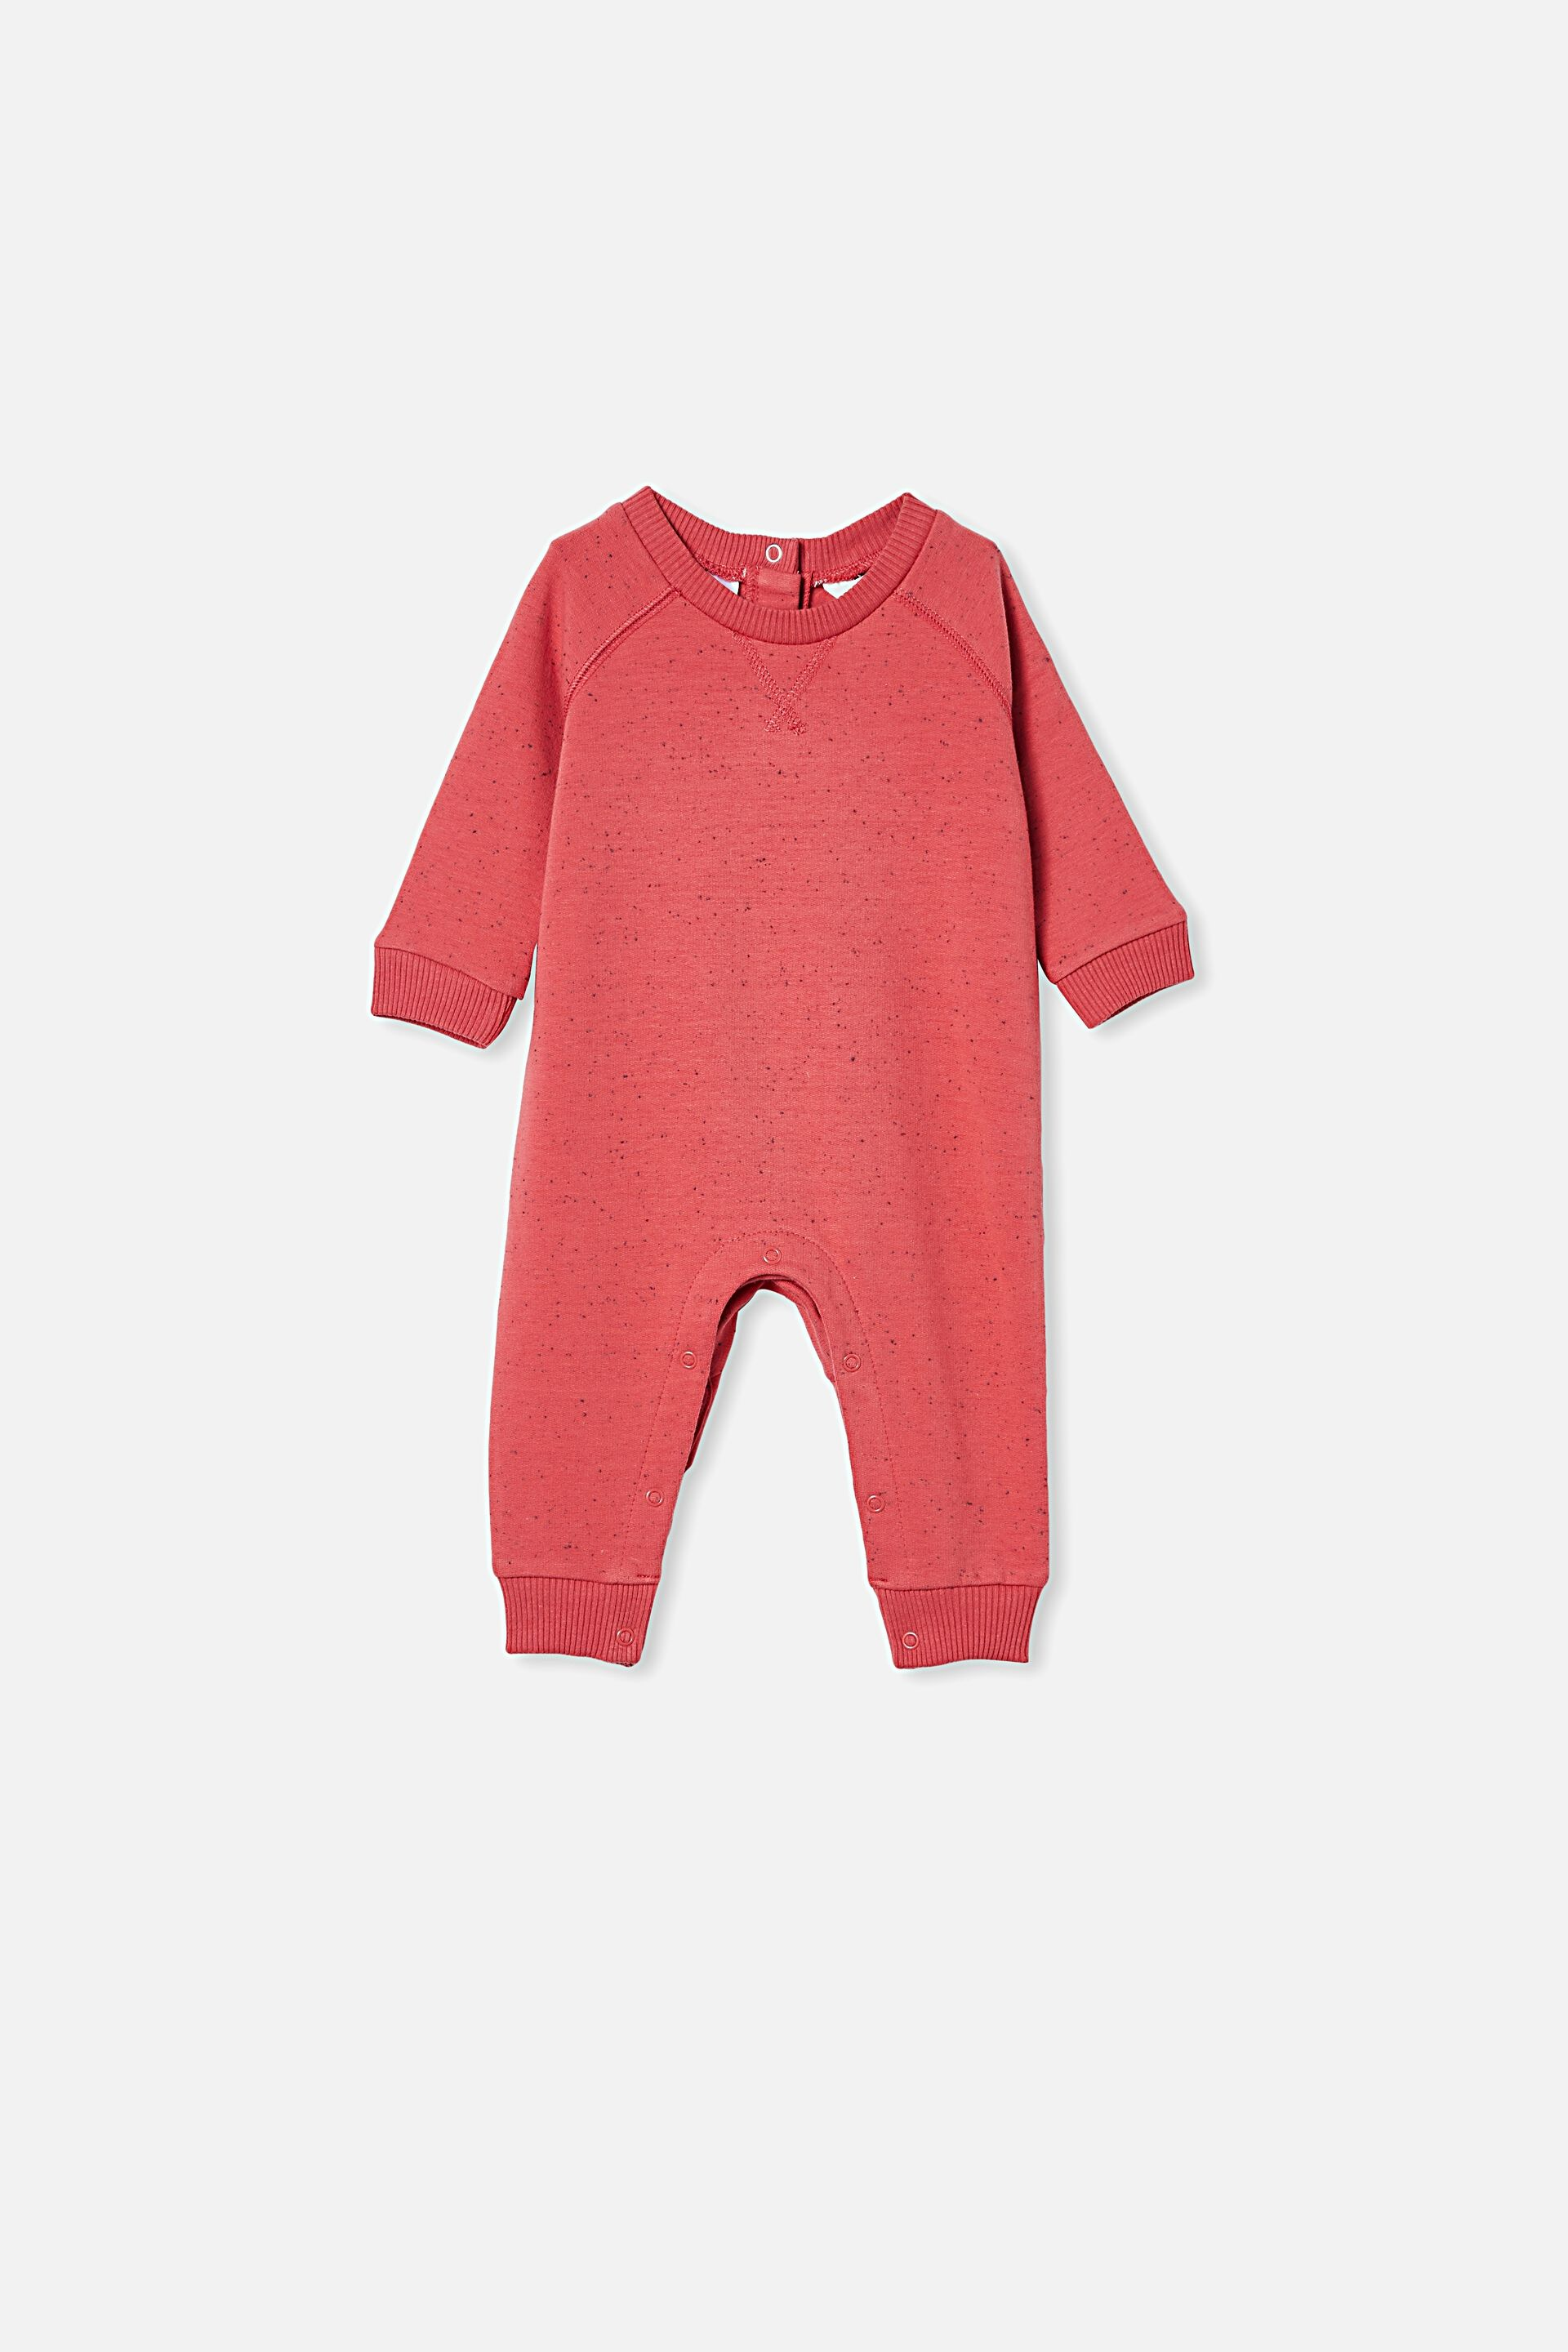 Red Stripes Heart Tie Love Cute Baby Long Sleeve Gown Sleepwear Robes Nightgowns